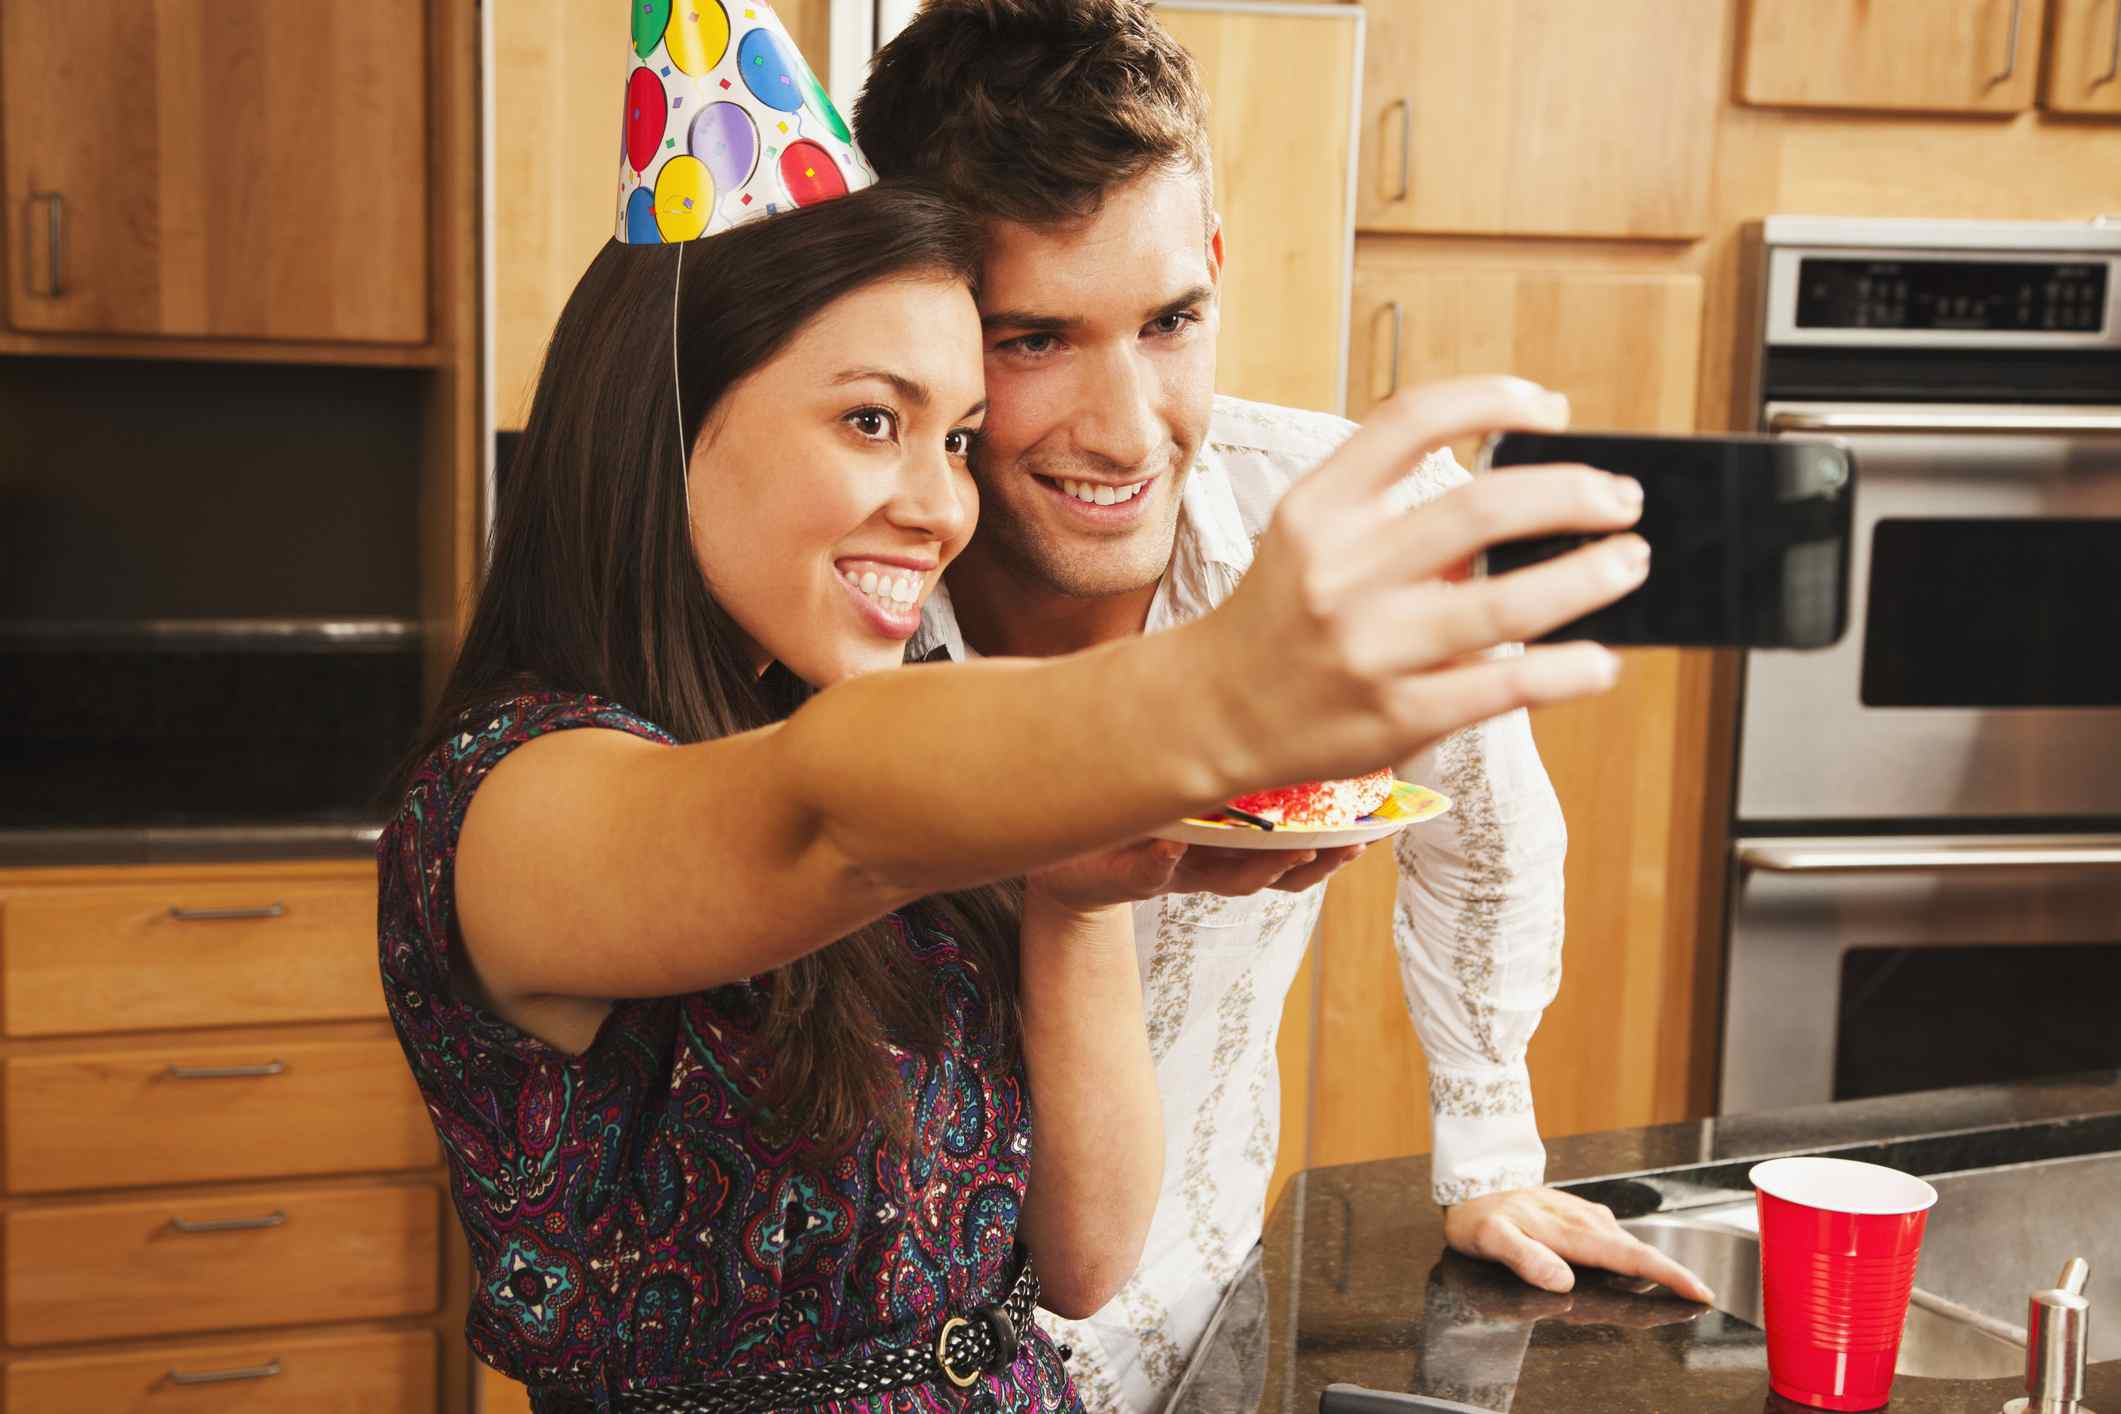 An image of a man and a woman posing for a selfie at a birthday party.